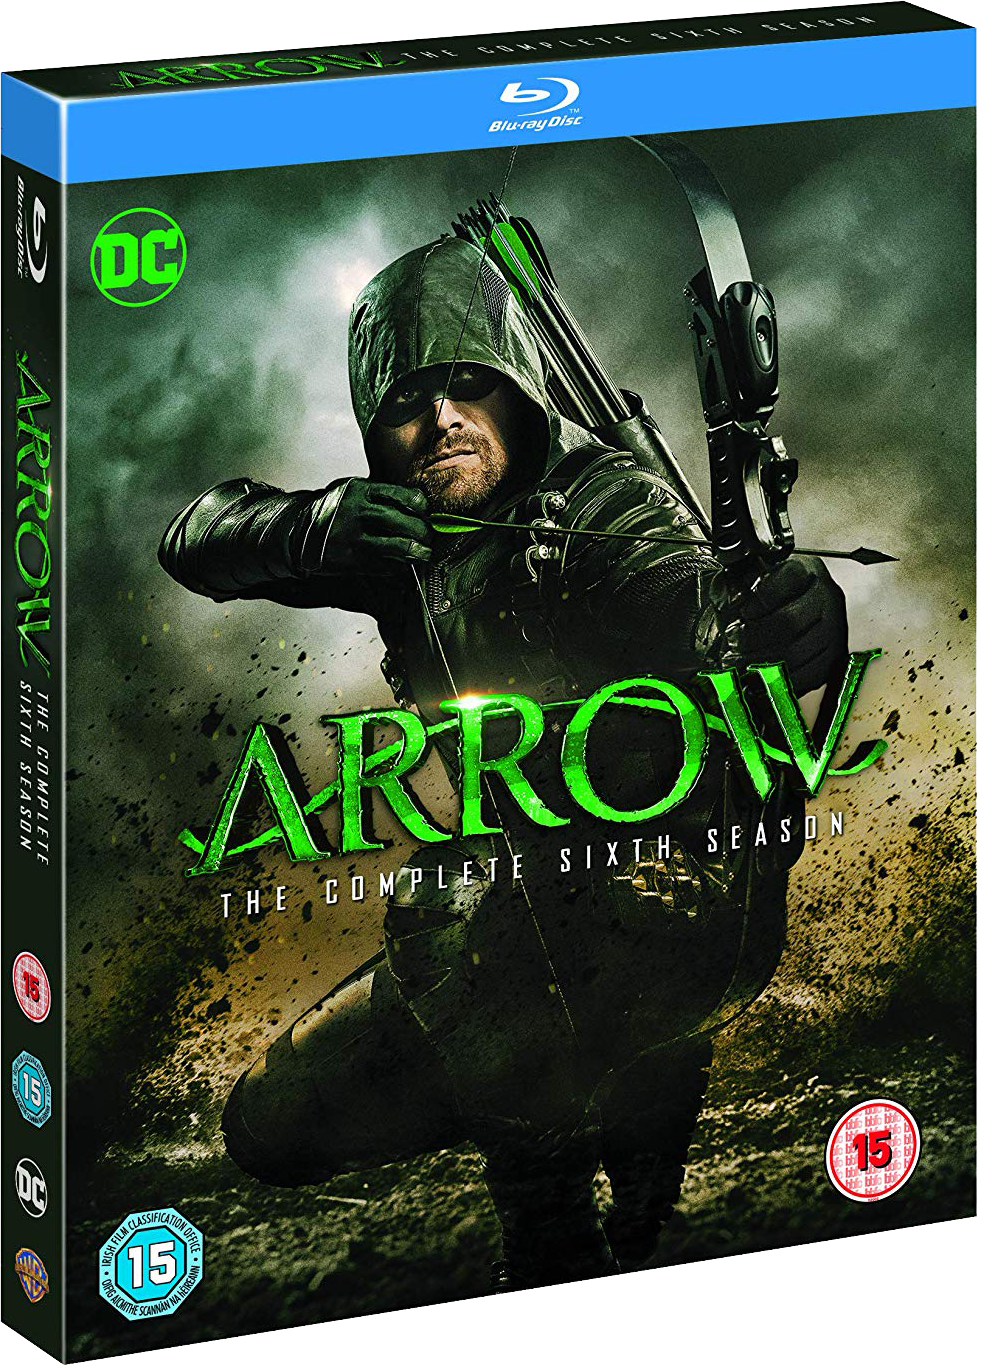 Arrow - The Complete Sixth Season region B cover.png